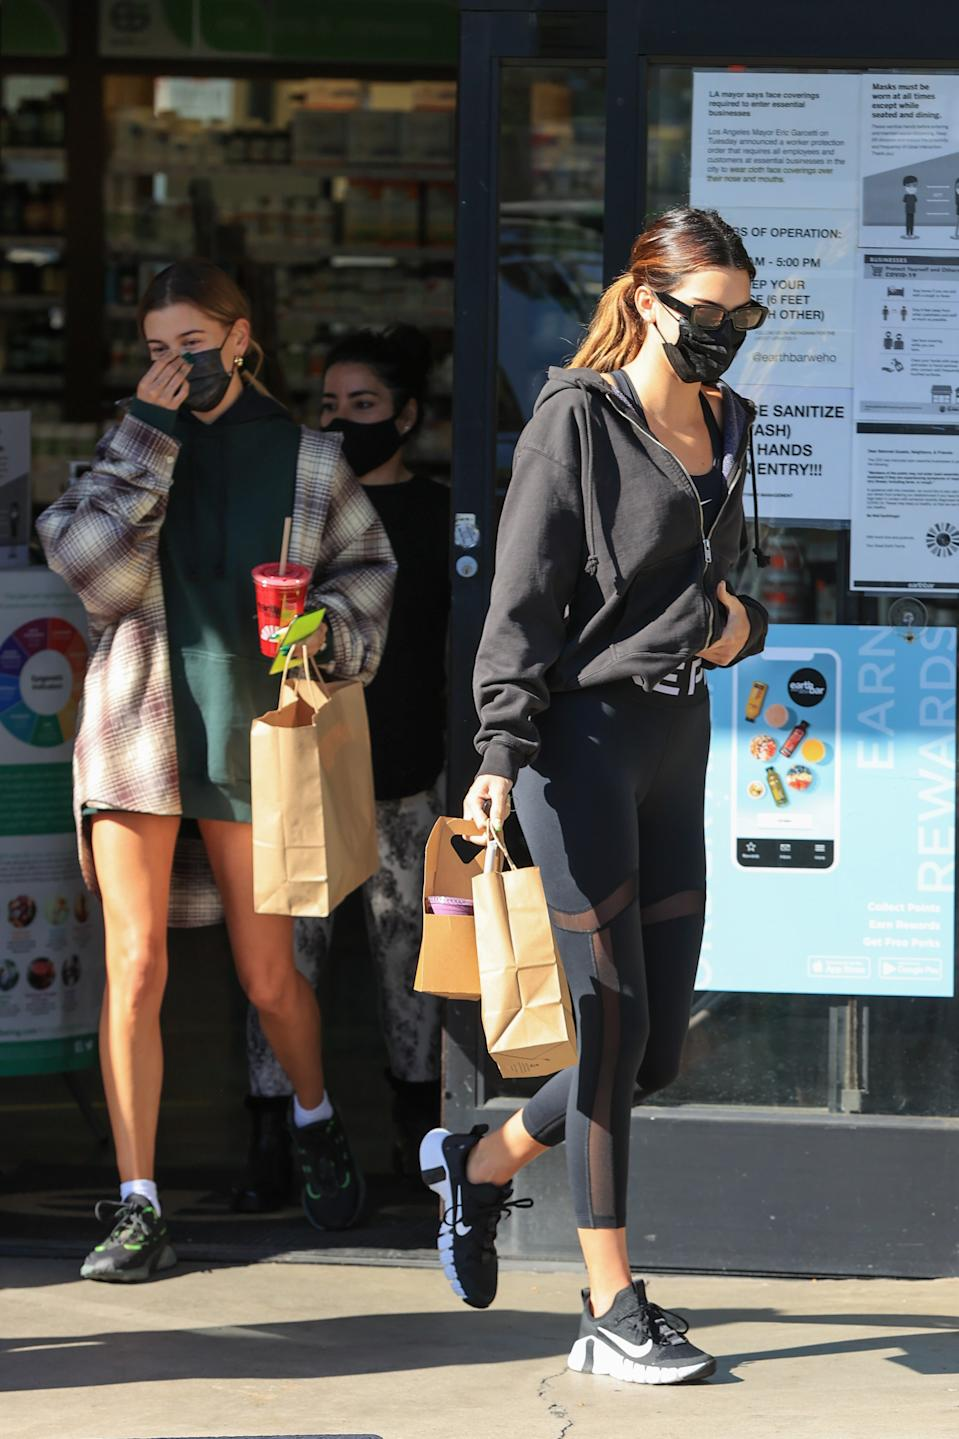 LOS ANGELES, CA - OCTOBER 27:  Kendall Jenner and Hailey Bieber seen picking up a juice on October 27, 2020 in Los Angeles, California. (Photo by Rachpoot/MEGA/GC Images